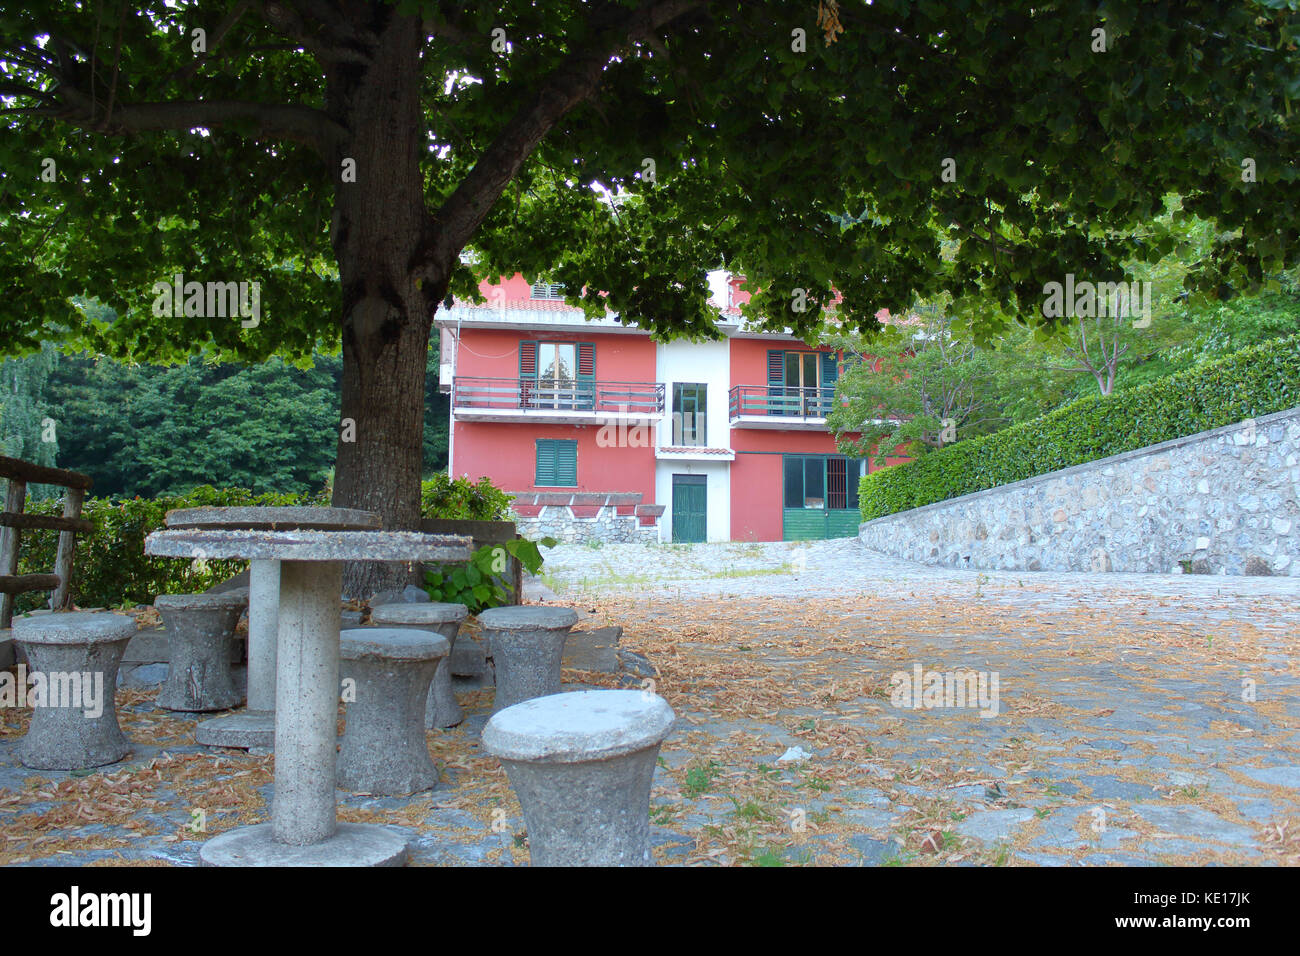 Pink Building In The Woods With A Stone Picnic Table In Foreground - Stone picnic table